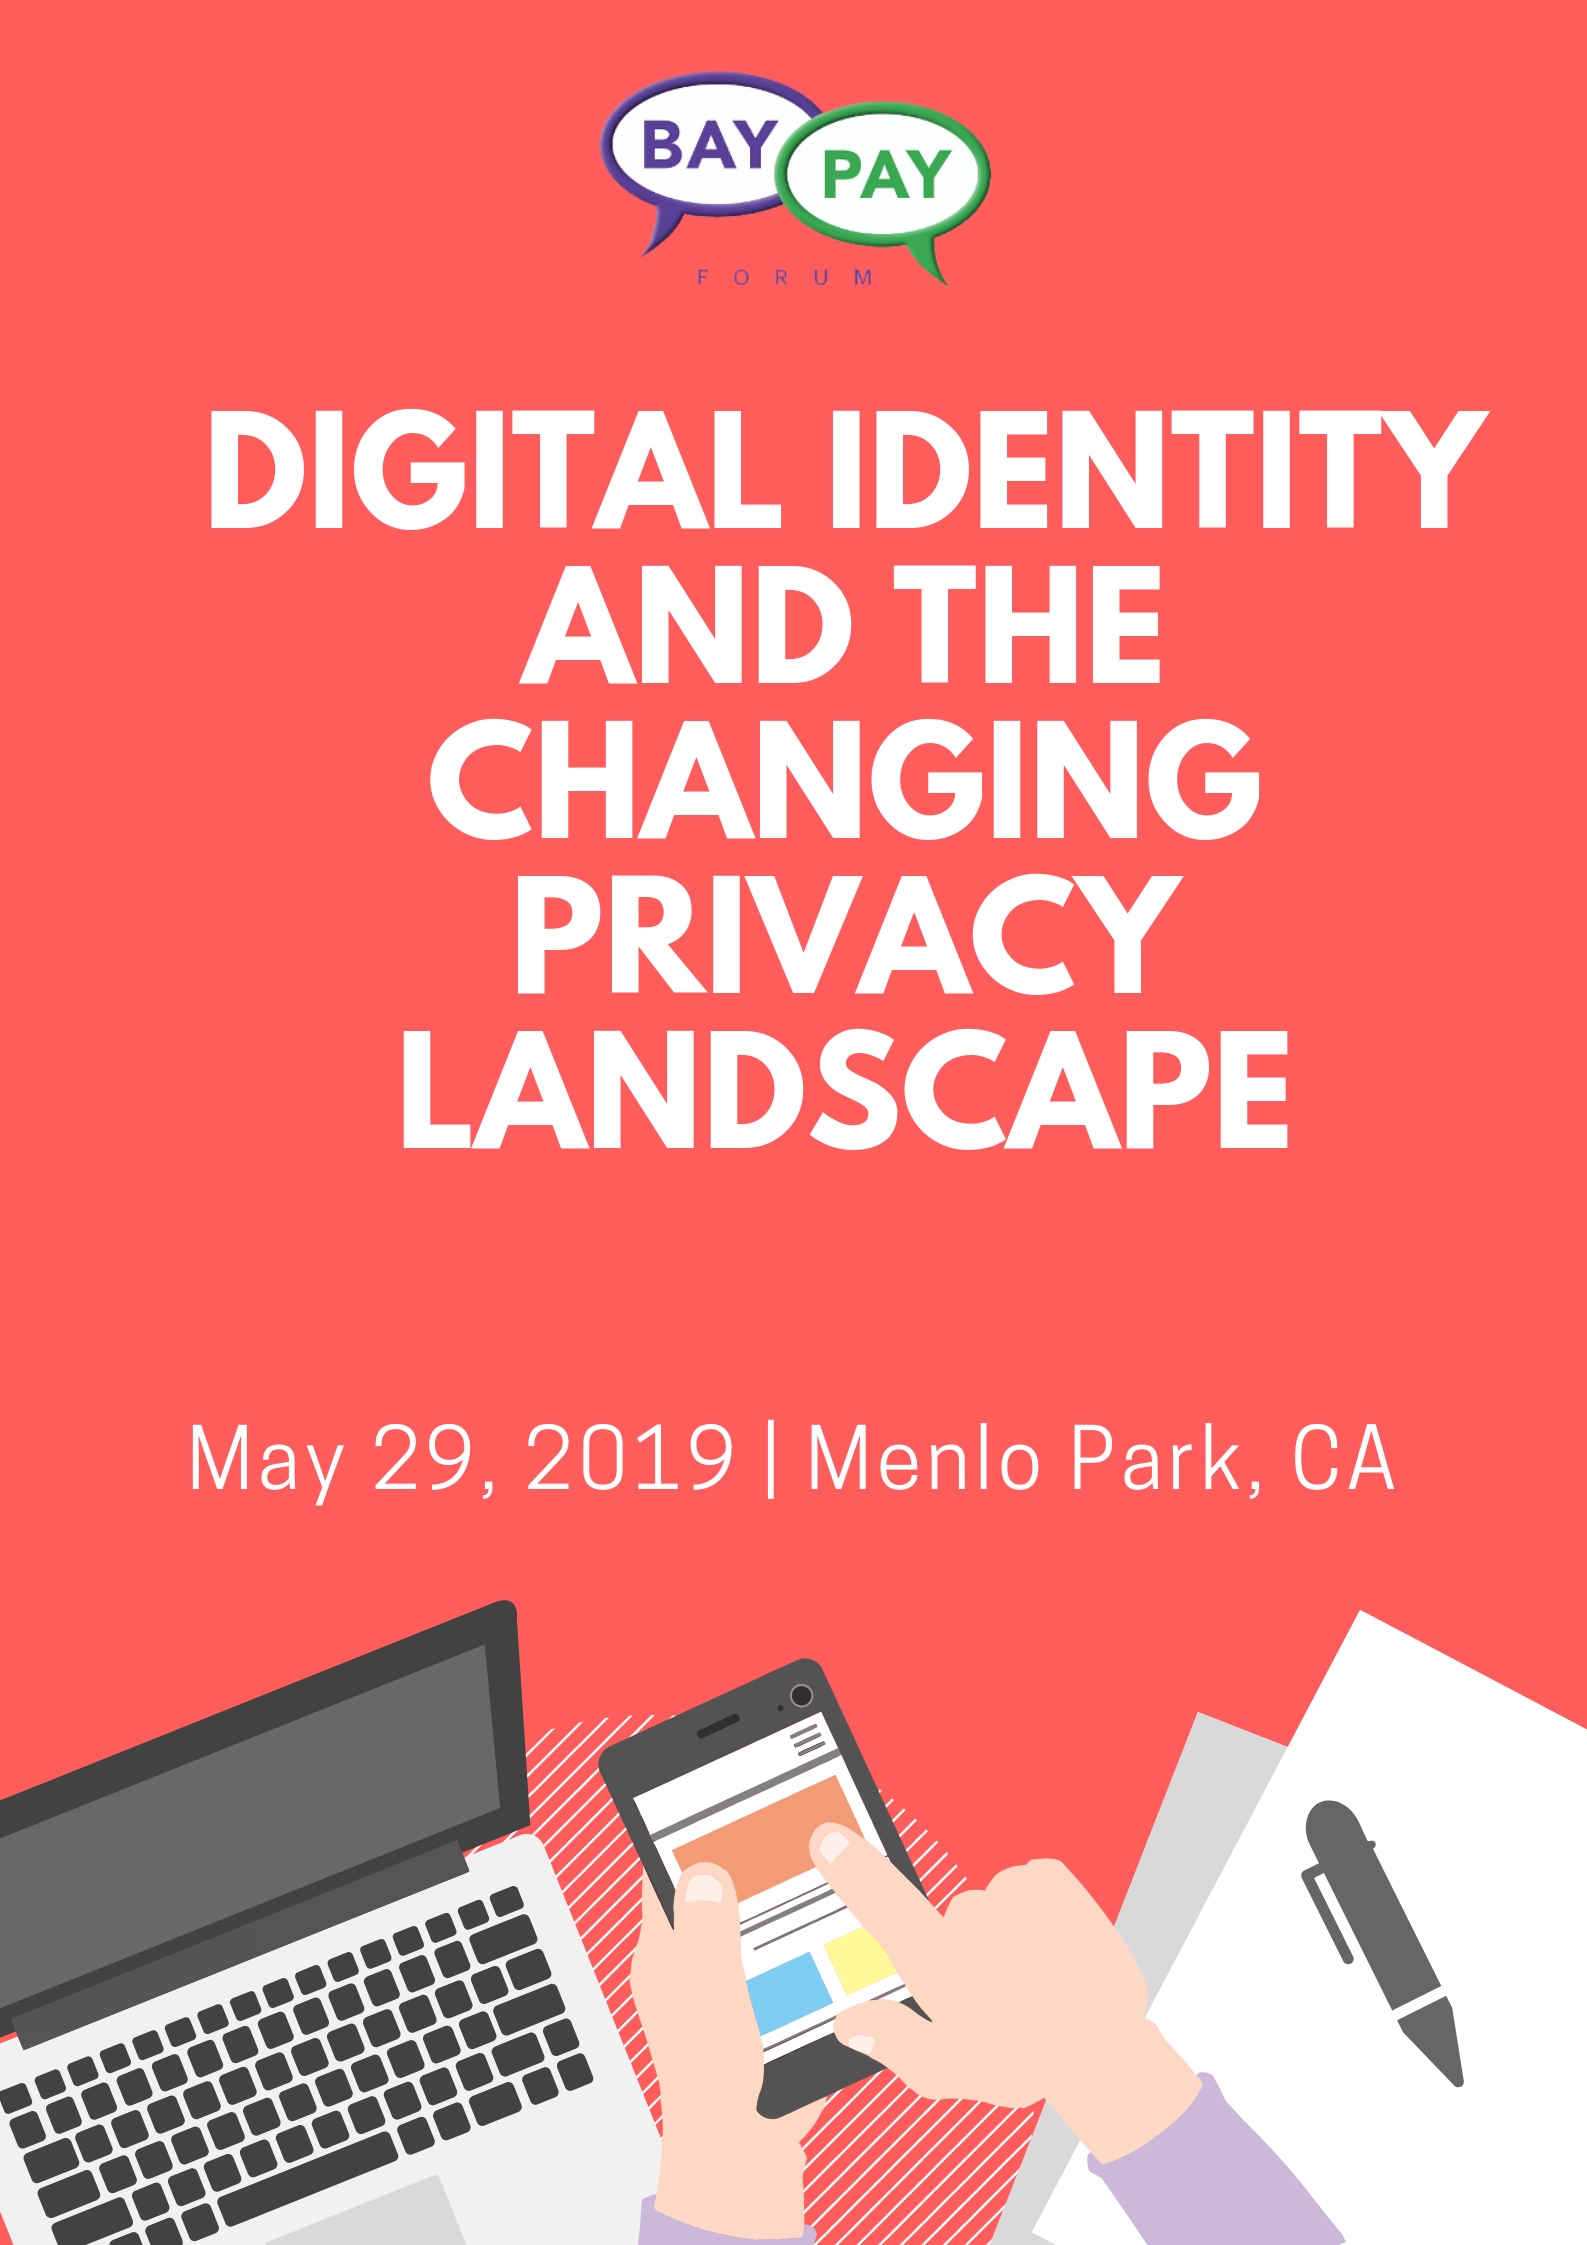 Digital Identity and the Changing Privacy Landscape (2019)